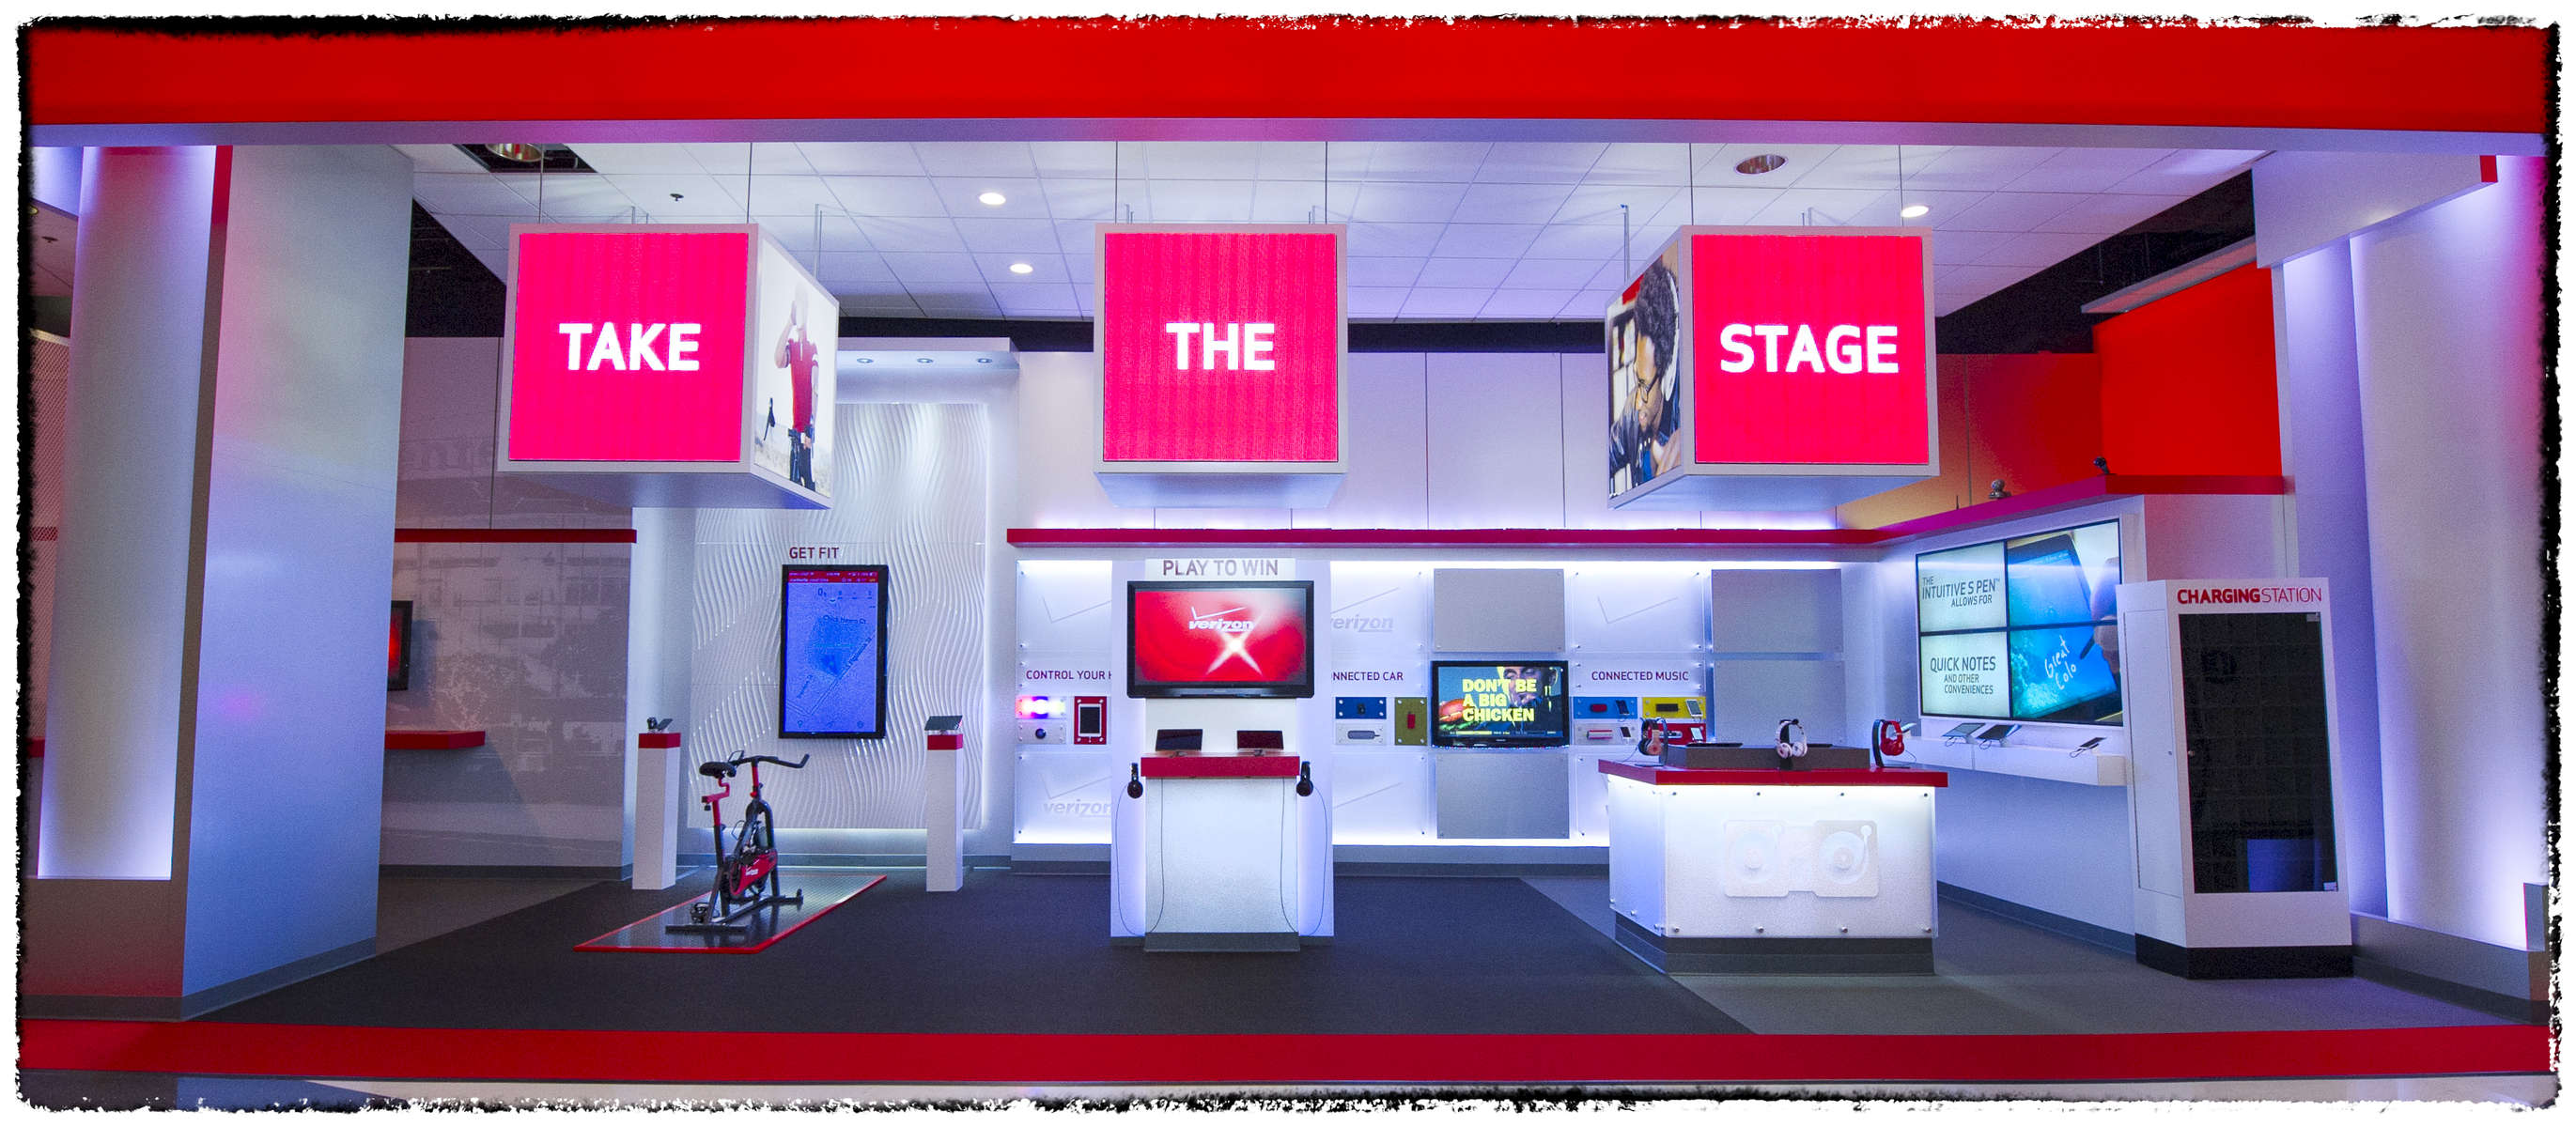 Activation photographed for Verizon.